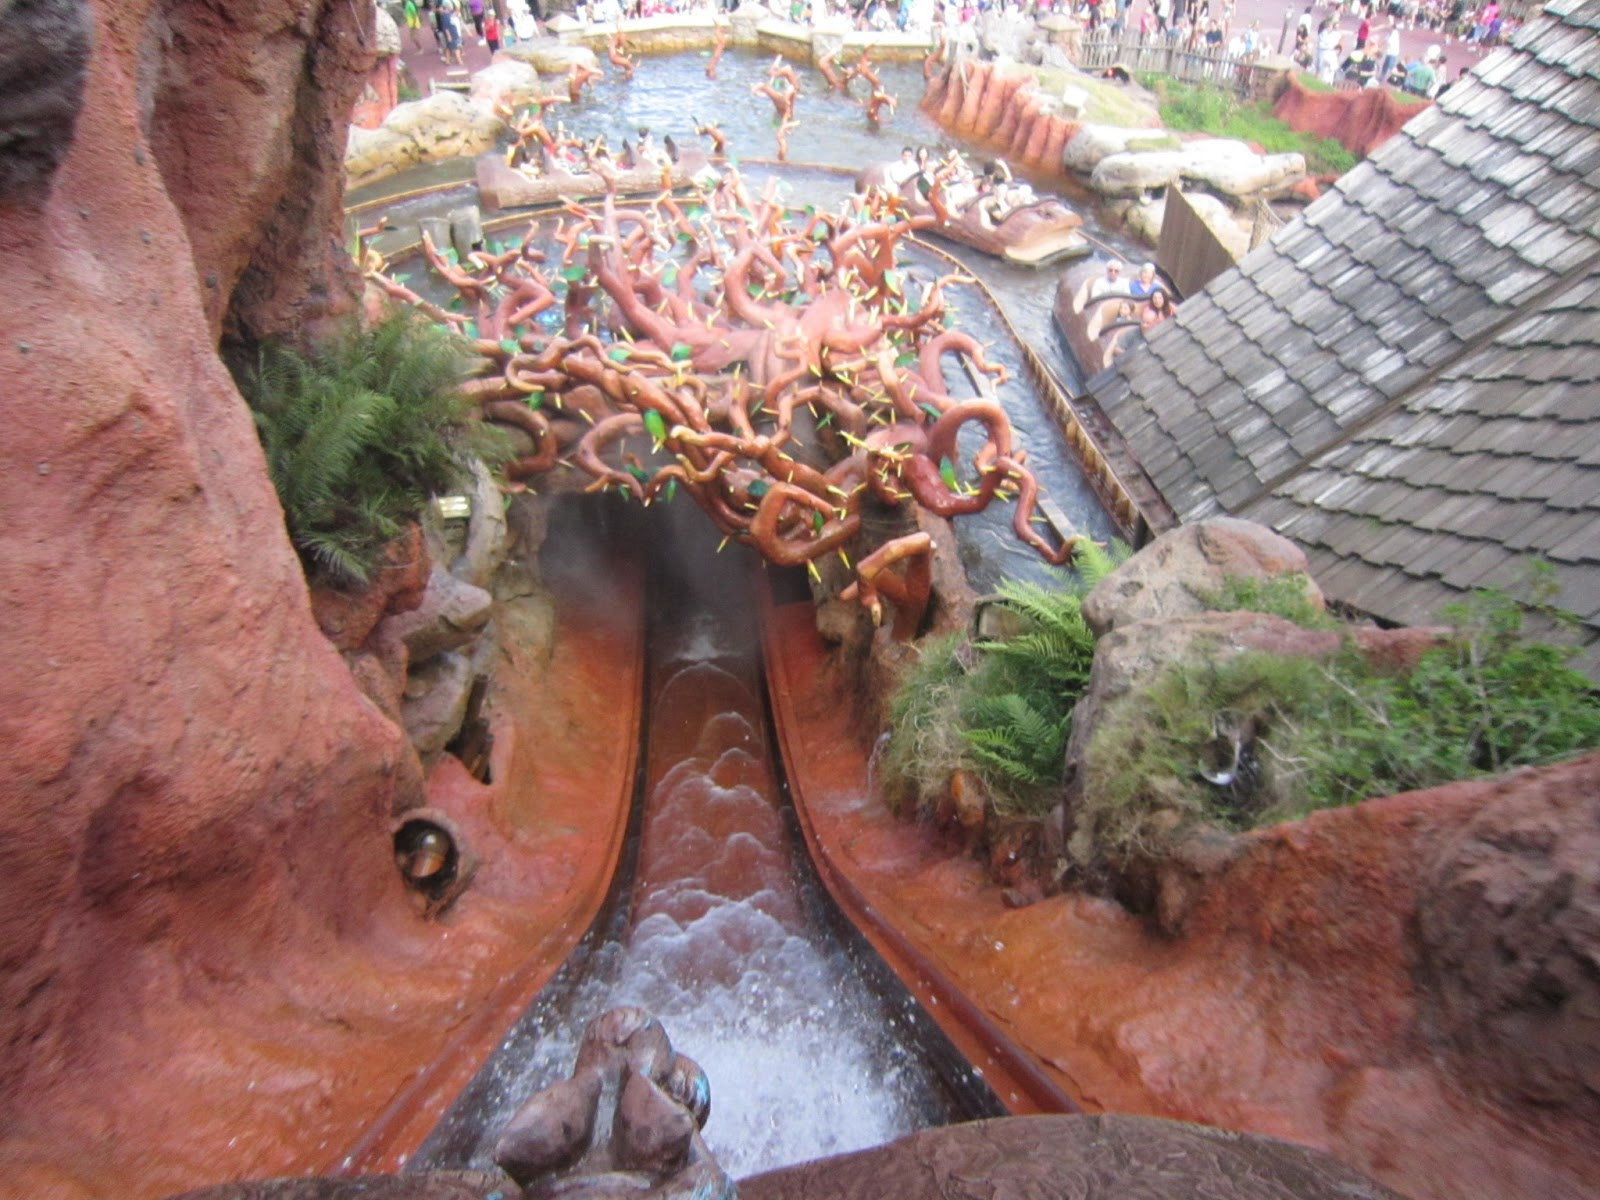 ride, water, Walt Disney World, Magic Kingdom